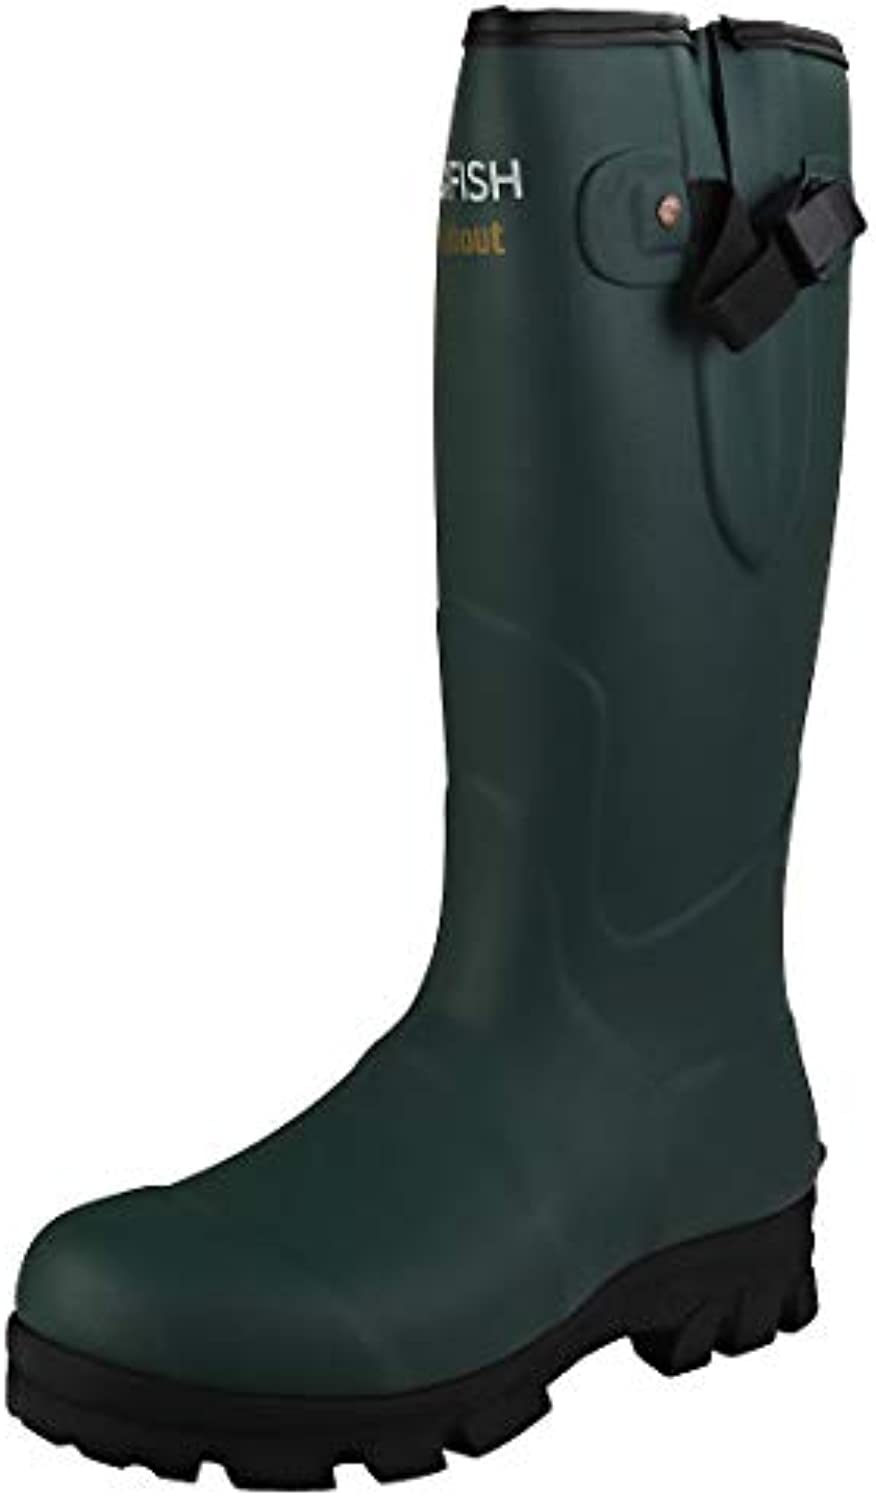 Rockfish Award Winning, Men's Wellies, Walkabout, Neoprene Lining for Extra Extra Extra Warmth And Comfort, Natural Rubber... | Design lussureggiante  fc9fc6